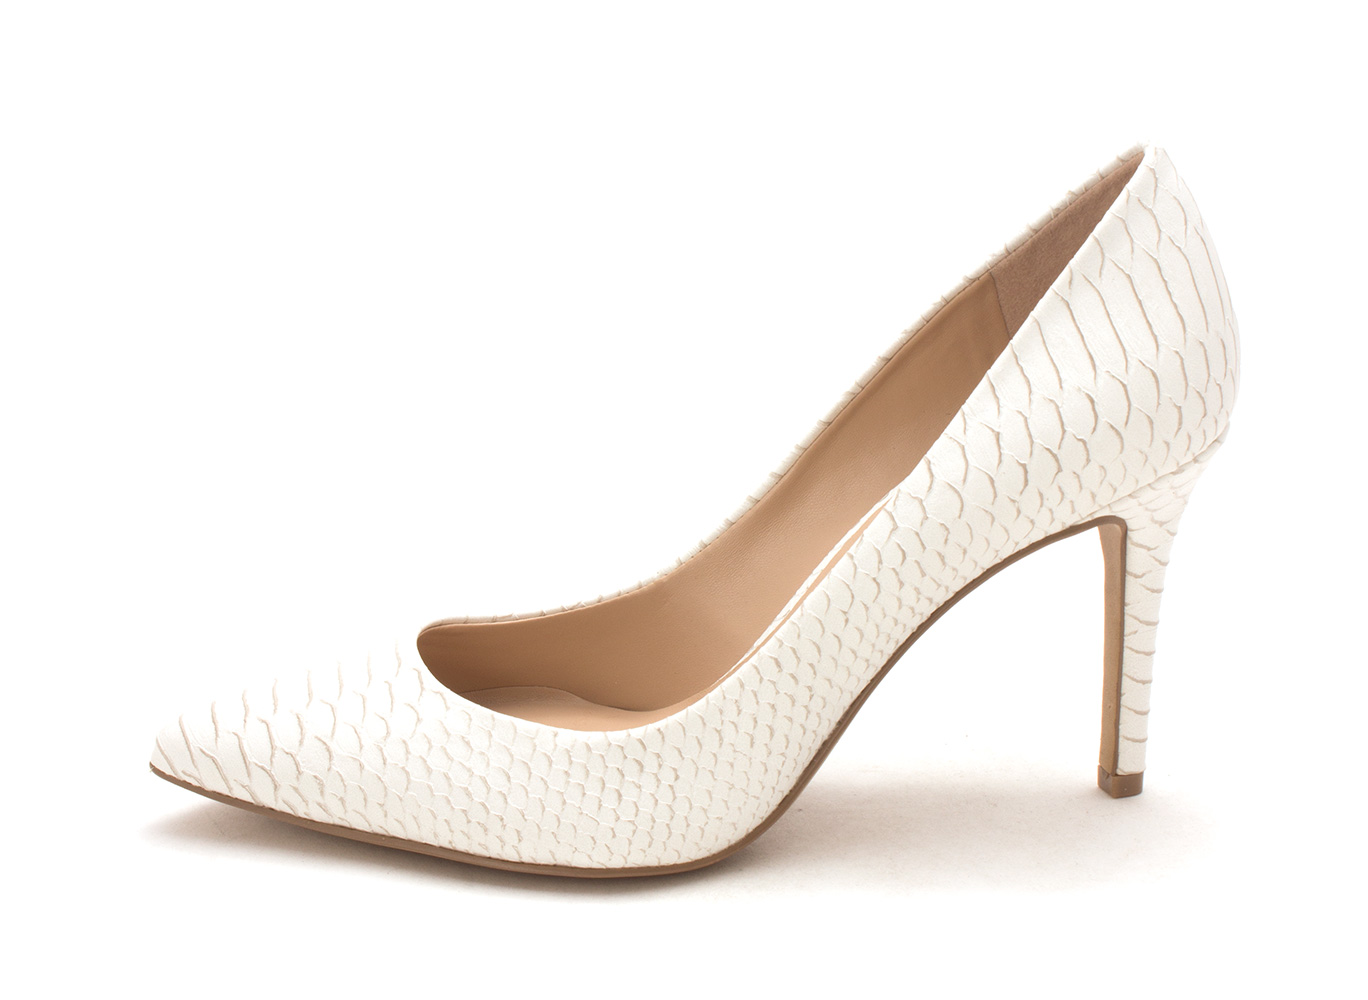 78b69ca1a468 Jessica Simpson Womens Levin Pointed Toe Classic Pumps